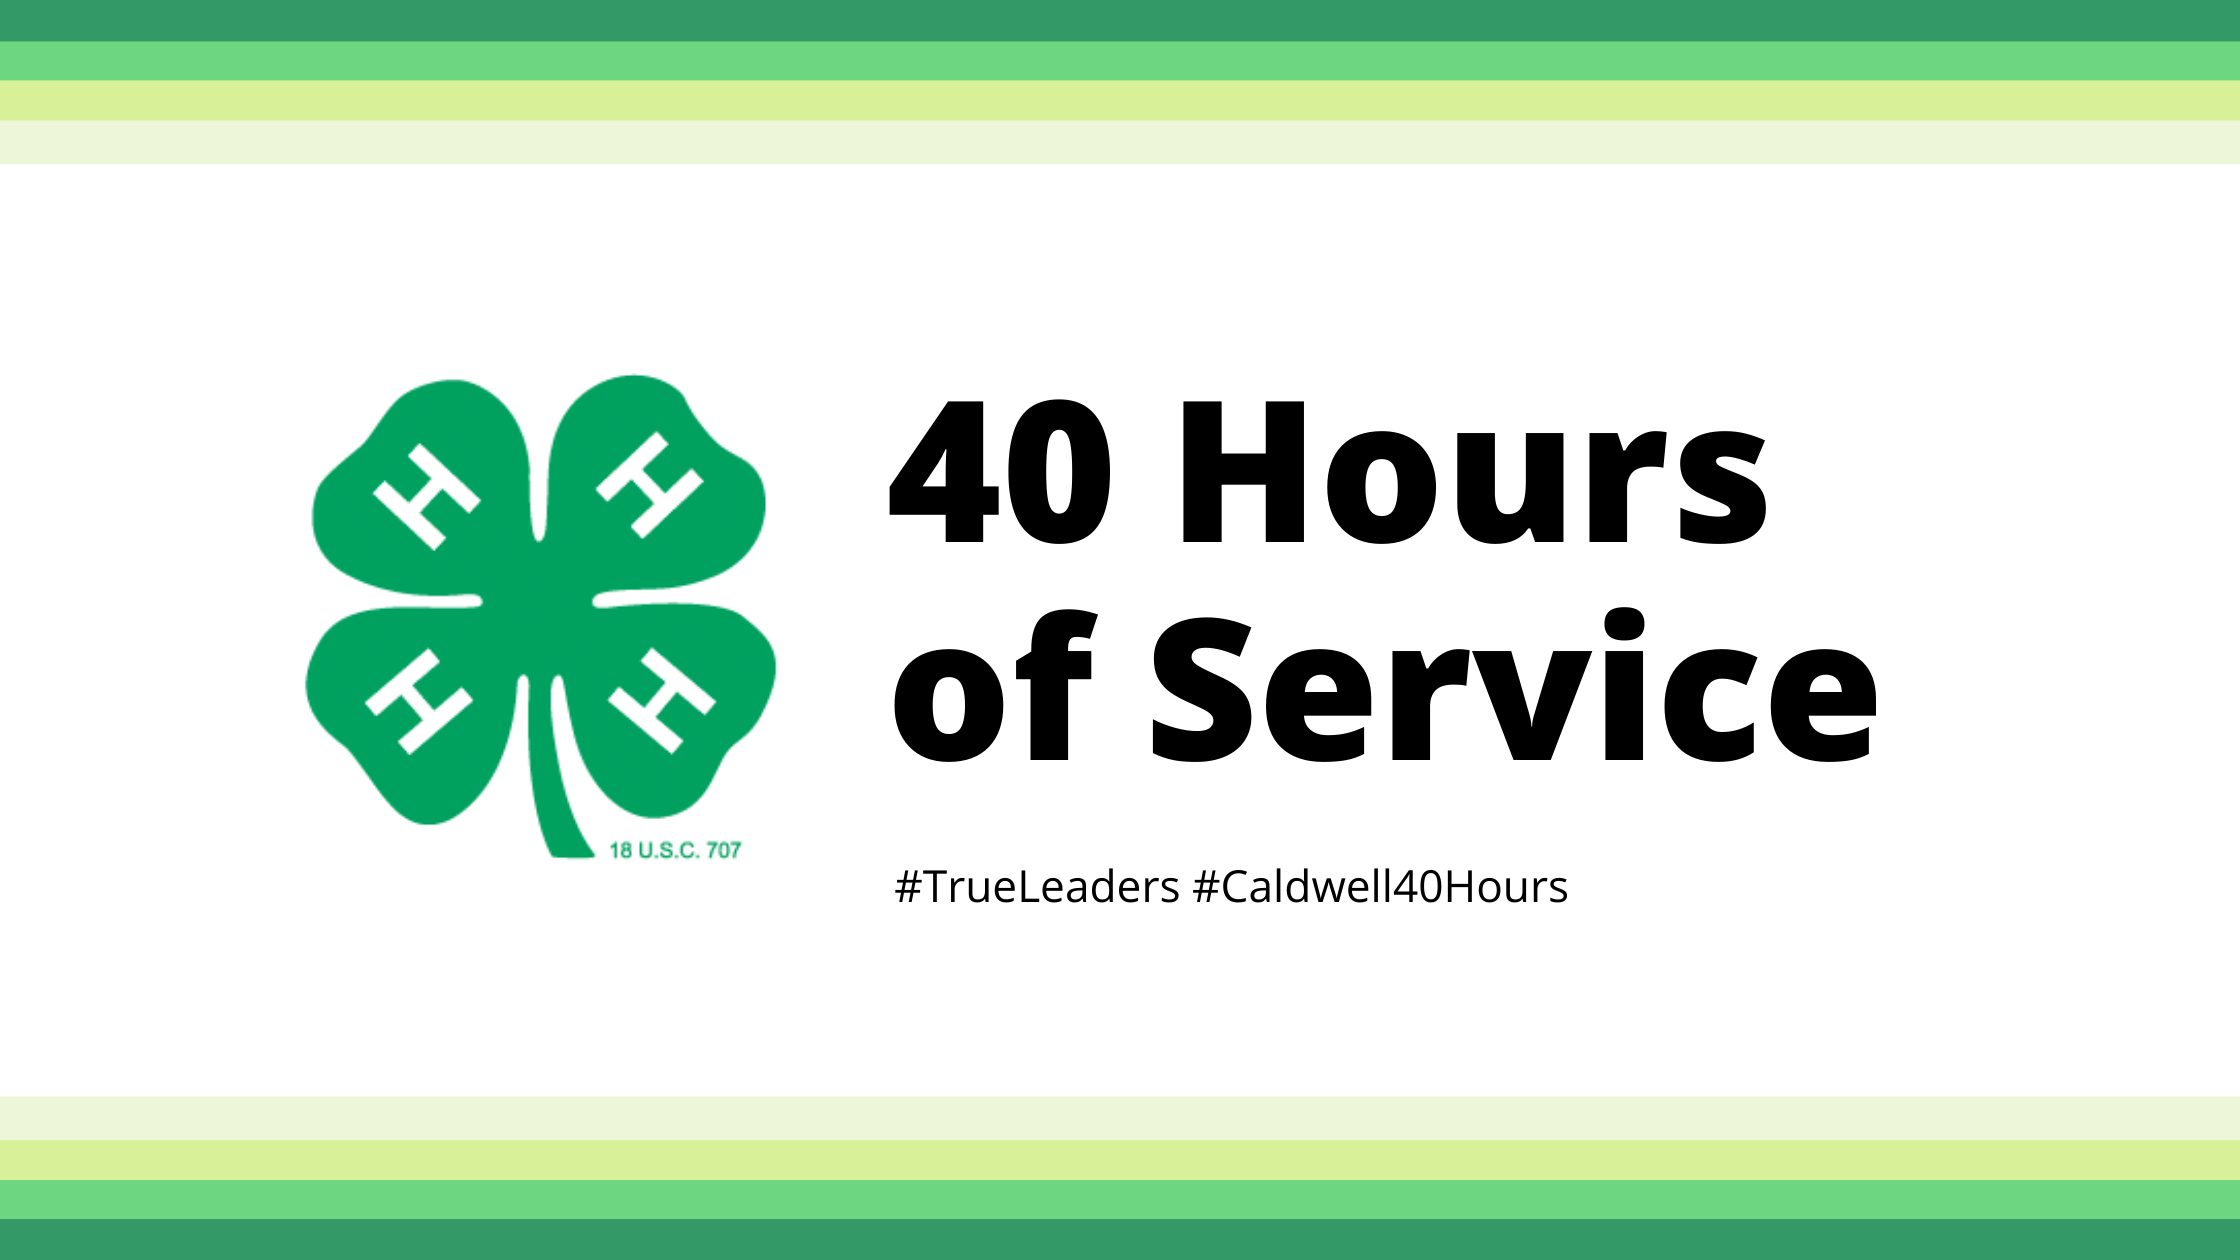 40 Hours of Service